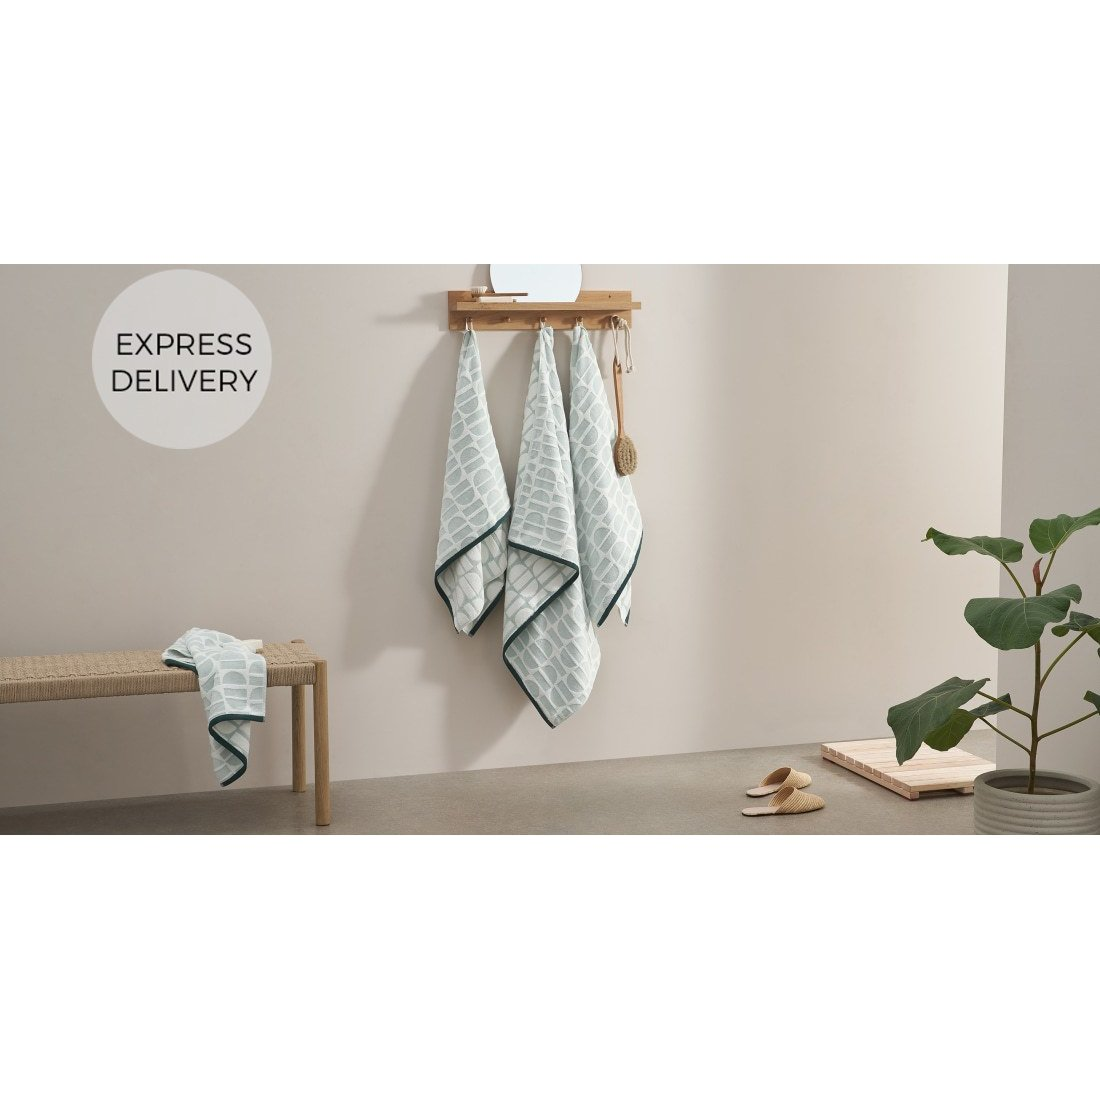 image-Oporo 100% Cotton Set of 2 Hand Towels, Green